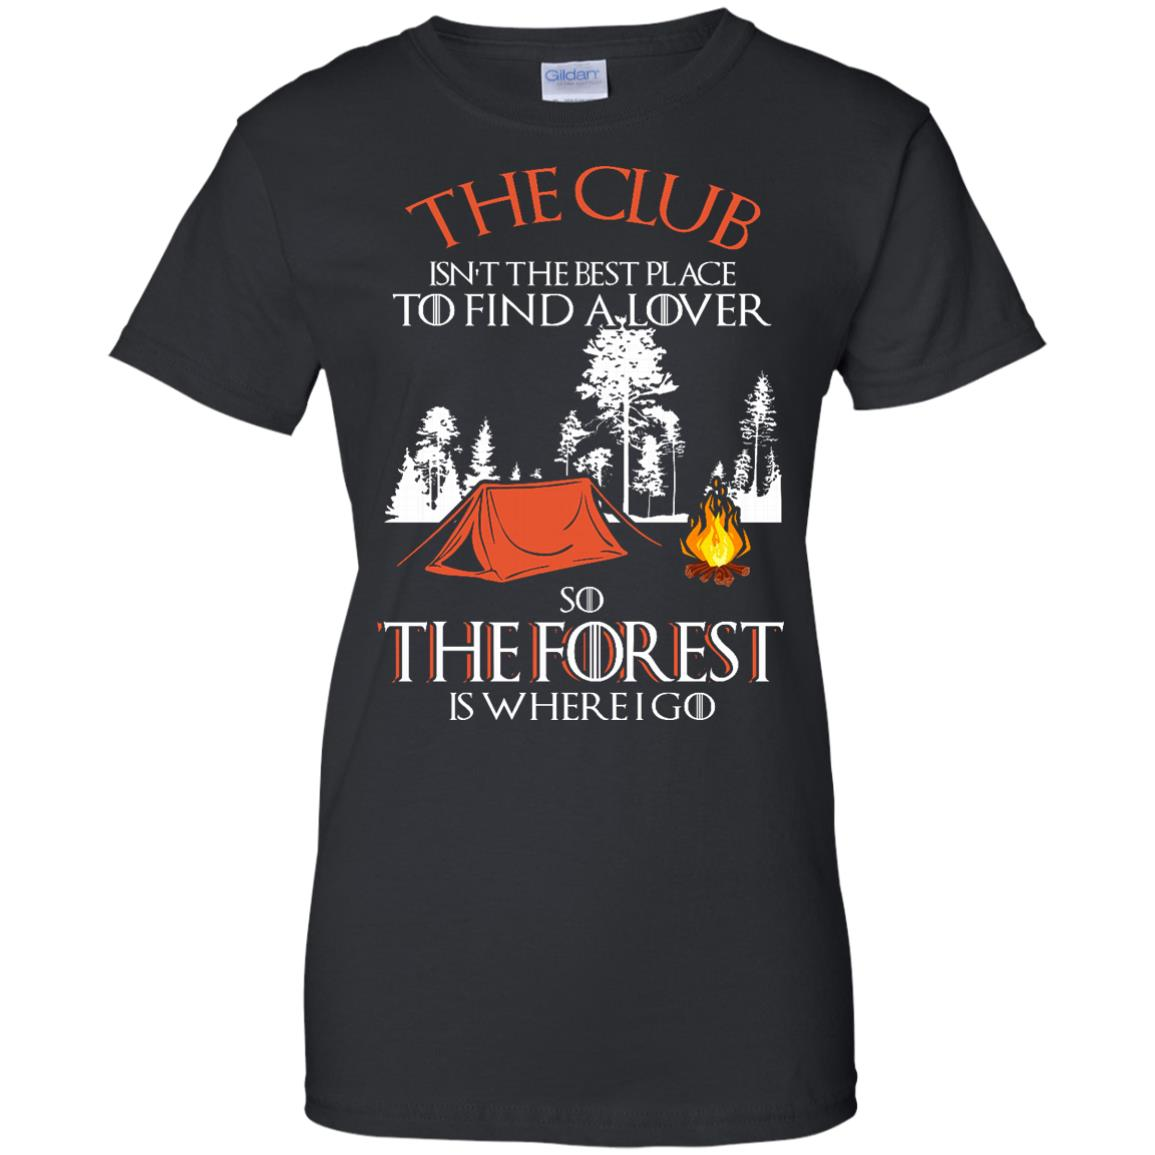 Got Ed Sheeran T Shirts Club Isn 39 T The Best Place To Find